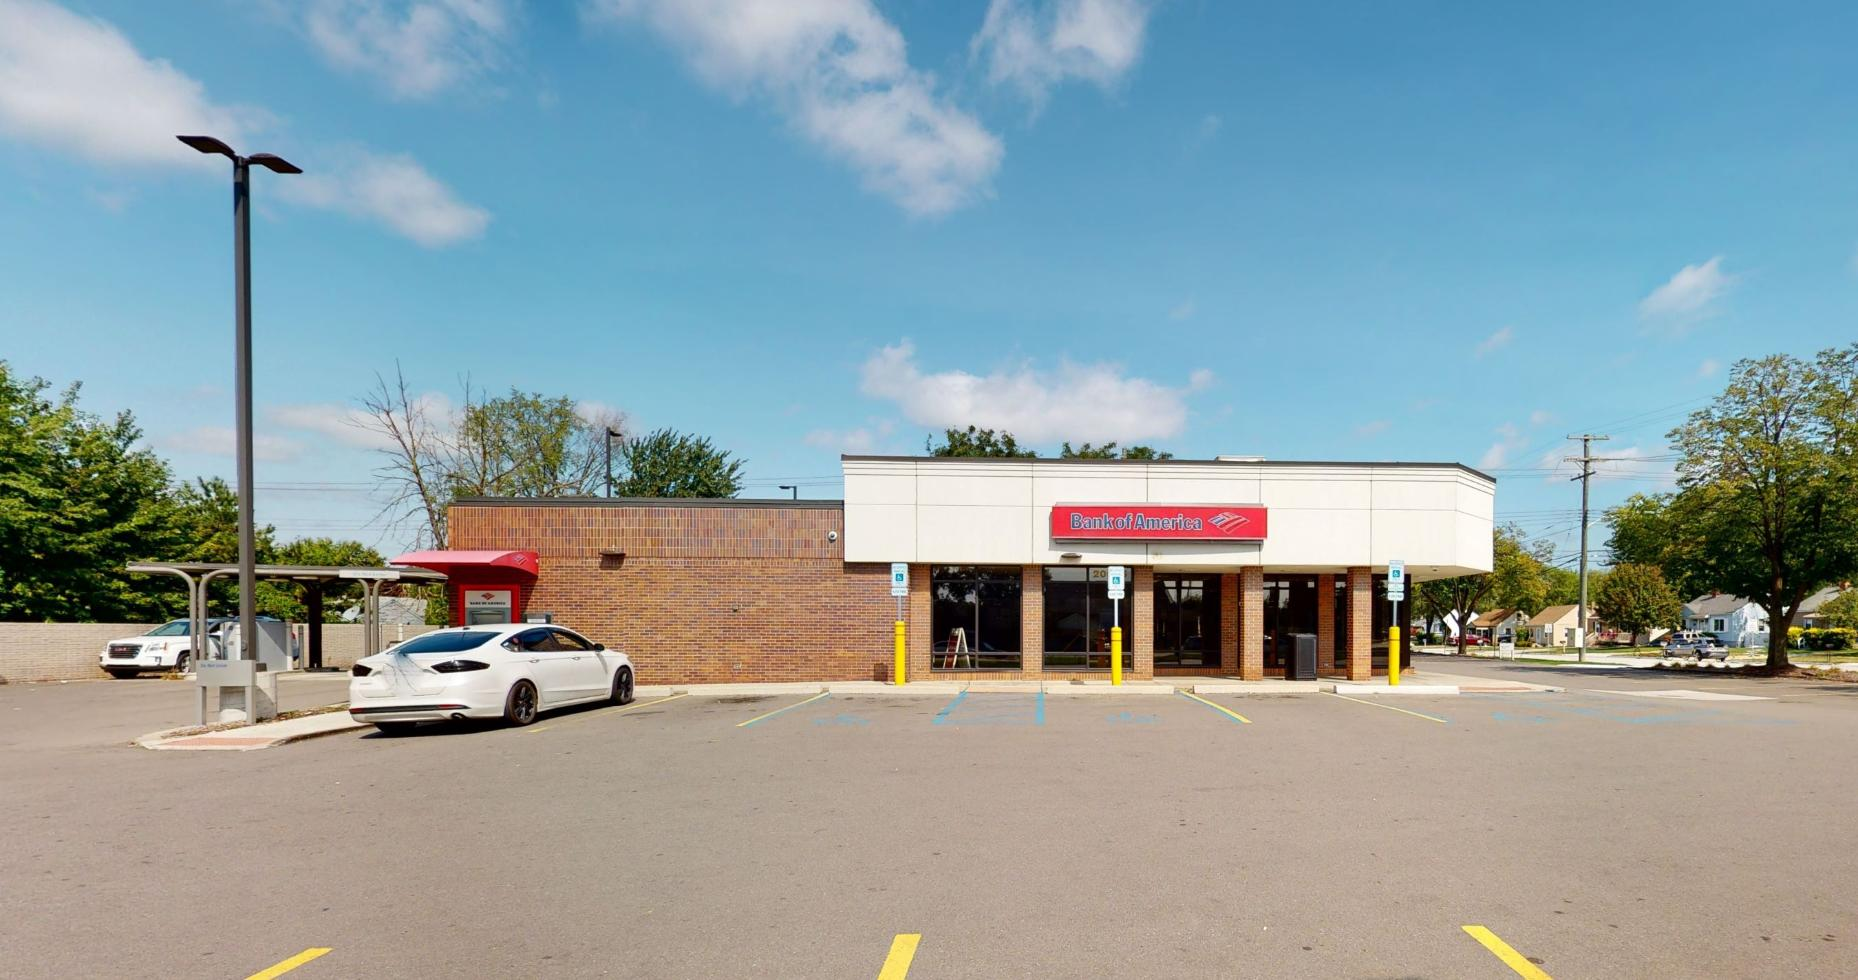 Bank of America financial center with drive-thru ATM and teller | 20695 E 12 Mile Rd, Roseville, MI 48066